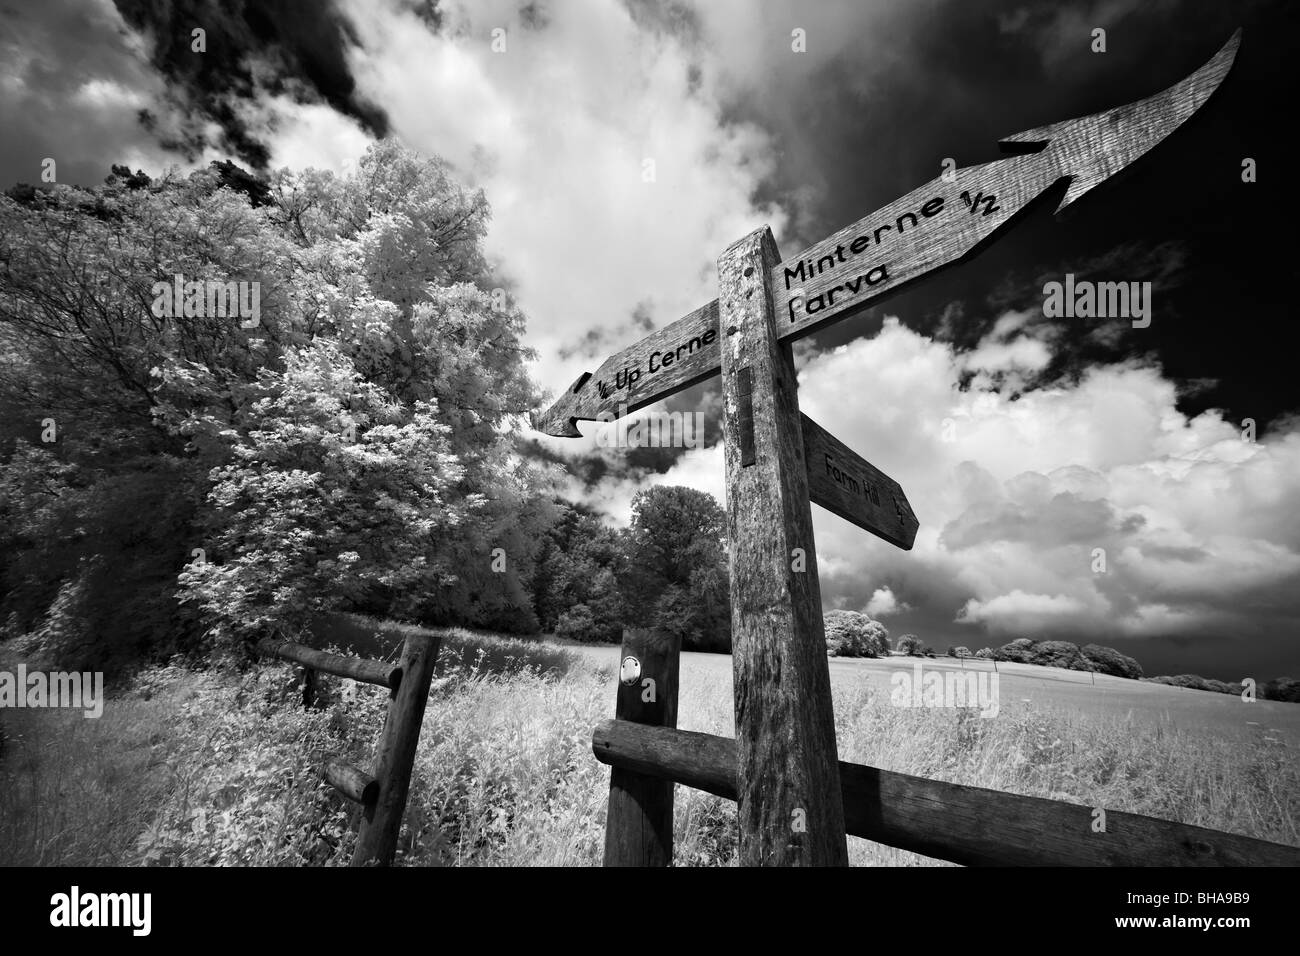 Signpost on a country lane, nr Up Cerne, Dorset, England, UK - Stock Image